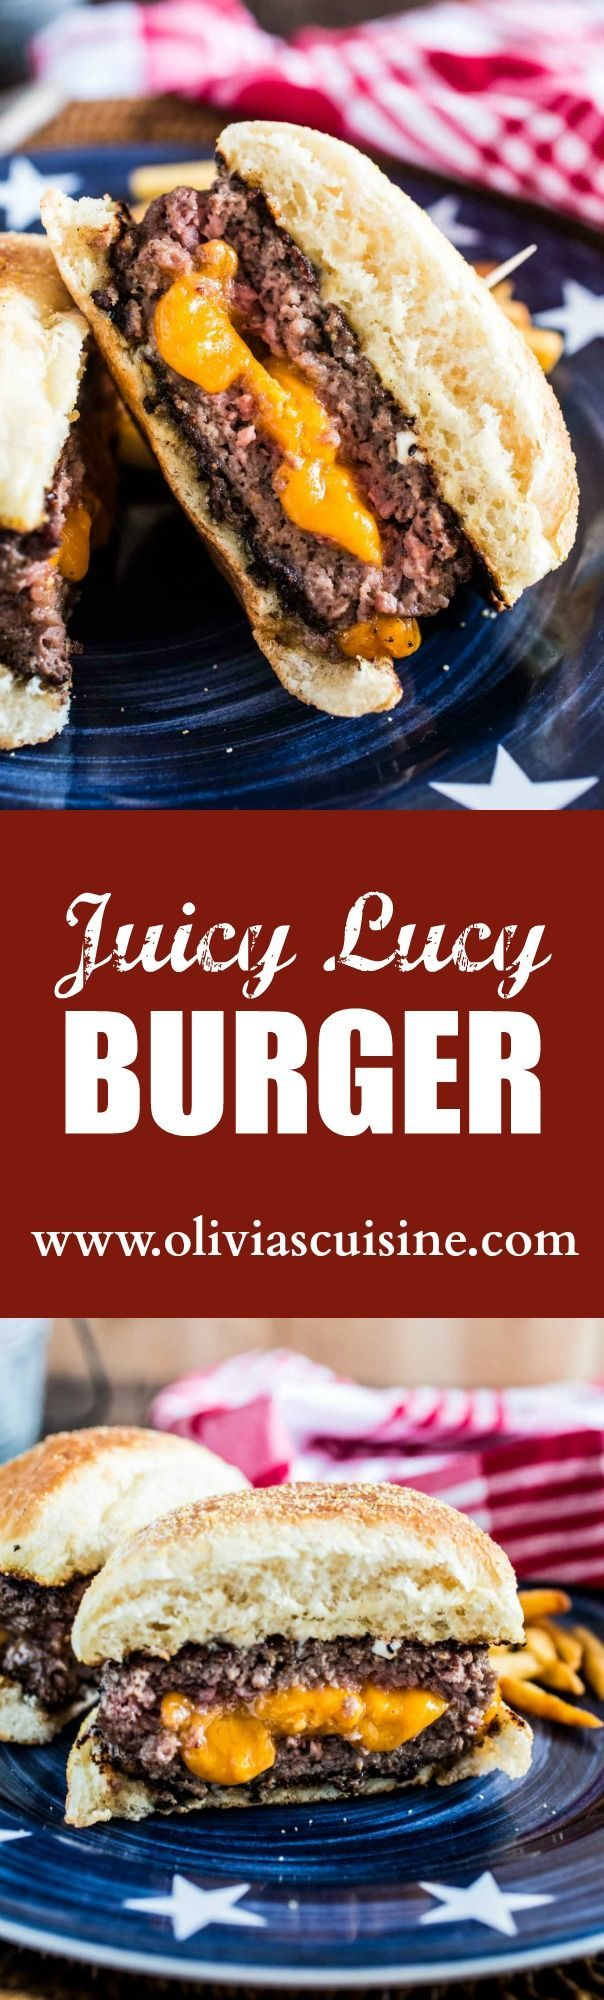 Juicy Lucy Burger | http://www.oliviascuisine.com | An iconic Minneapolis burger, stuffed with lots of cheese!